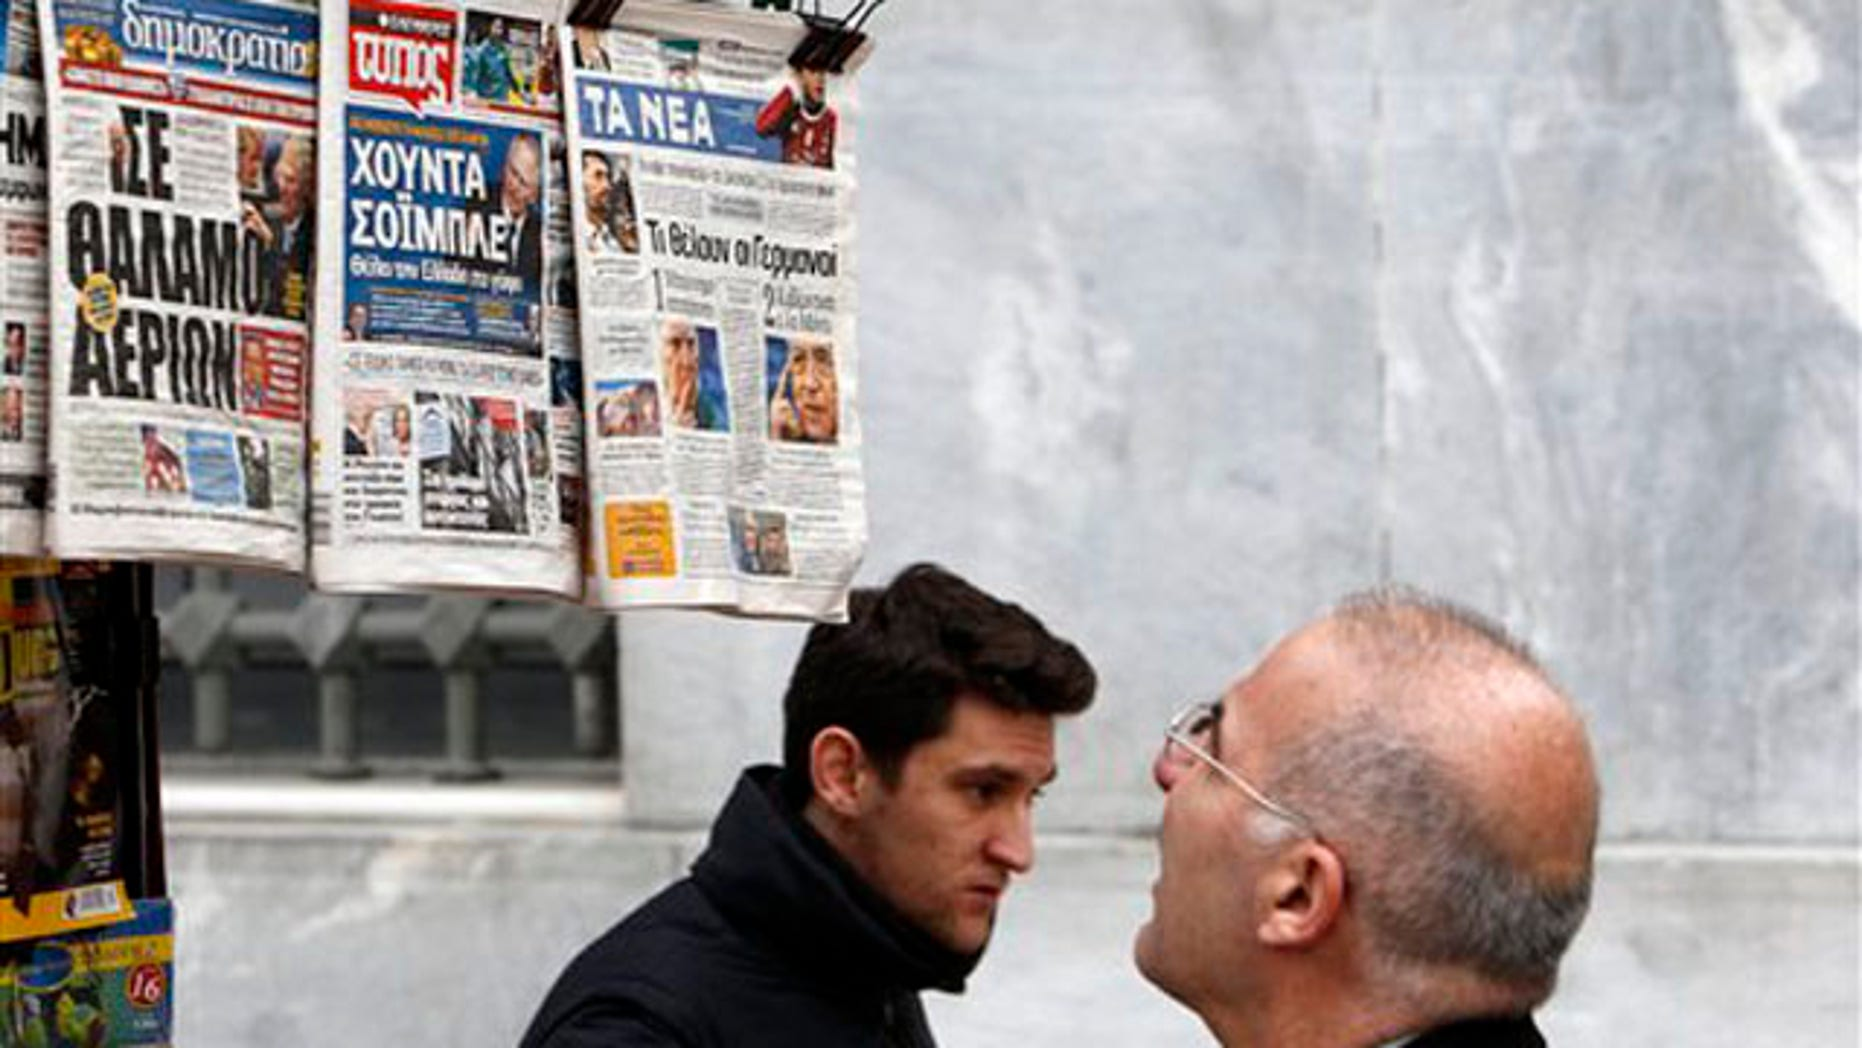 Feb. 16, 2012: A man reads the front pages of three Greek newspapers in Athens. Mounting confusion over whether Greece will get vital bailout cash to avoid defaulting next month is rekindling fears that Europe's debt crisis will spread to bigger countries like Italy.